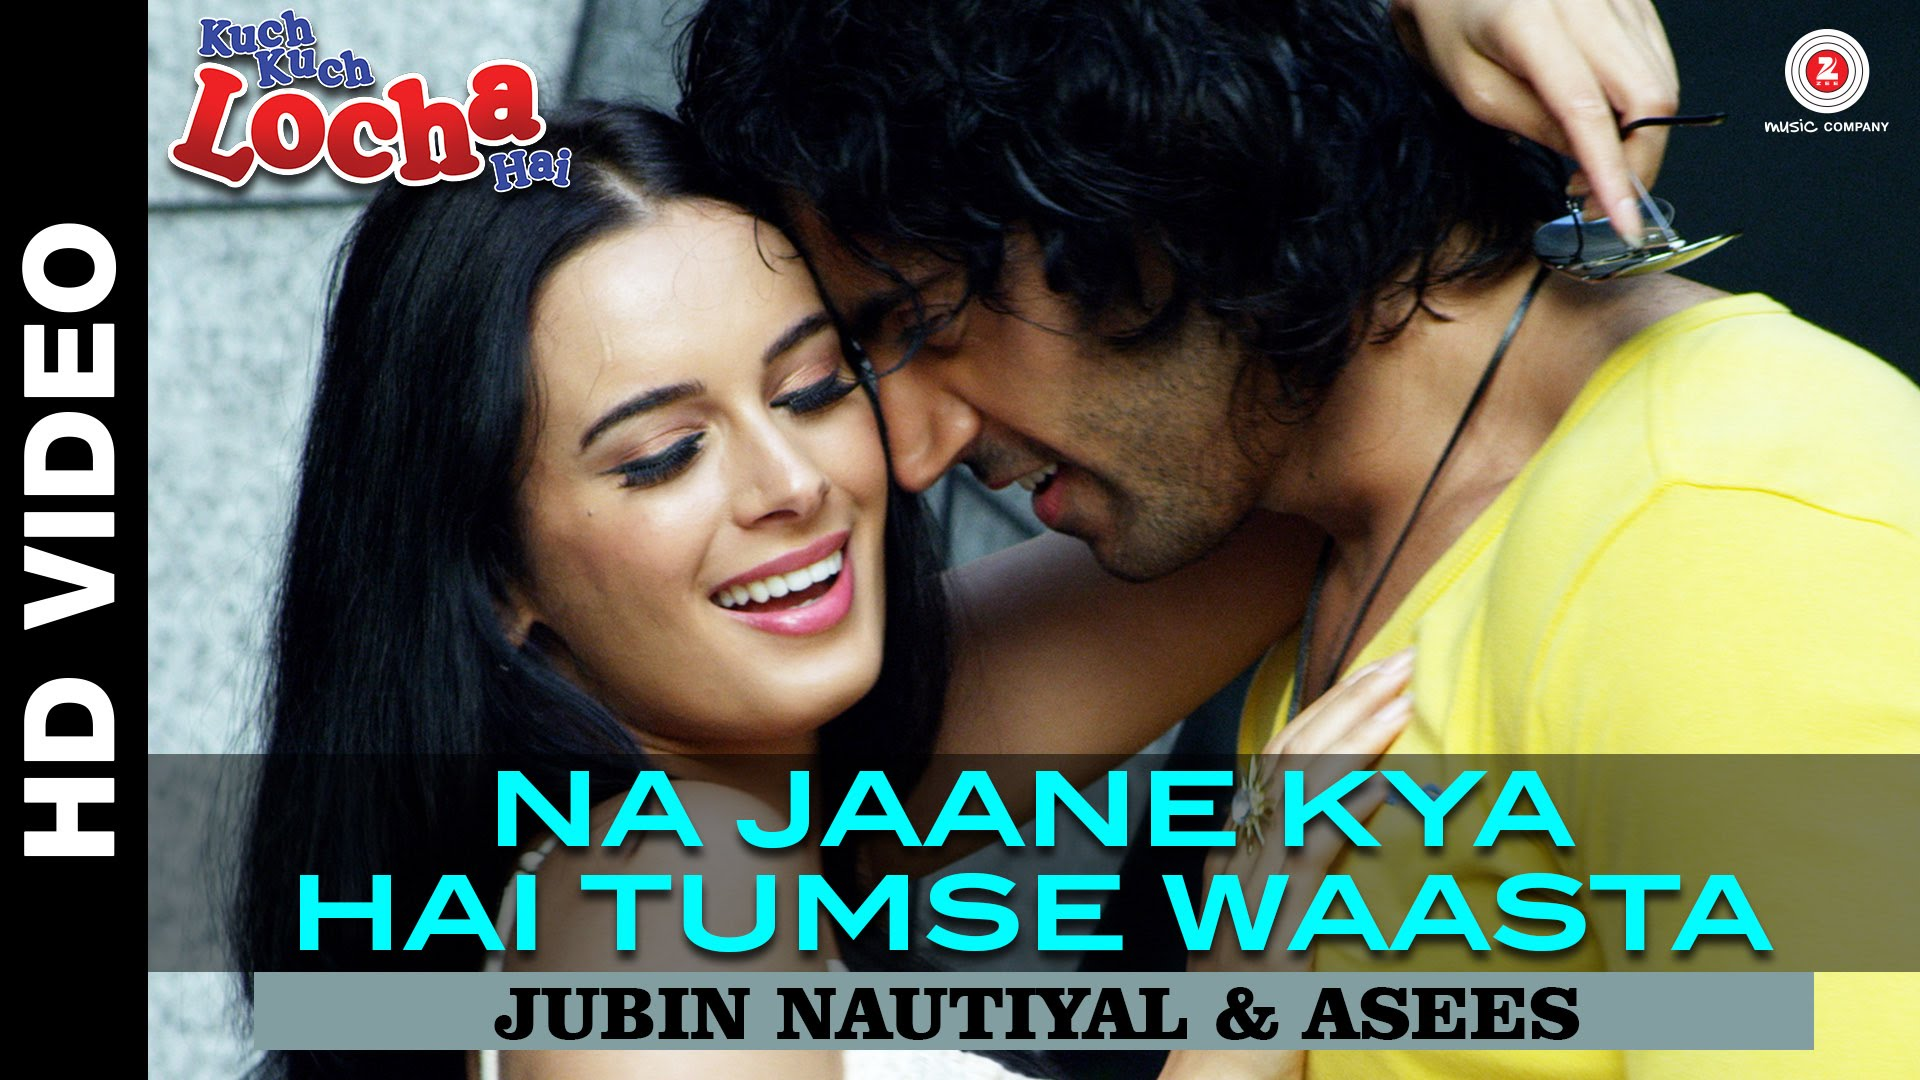 Na Jaane Kya Hai Tumse Waasta Video Song – Kuch Kuch Locha Hai | Official Video Song